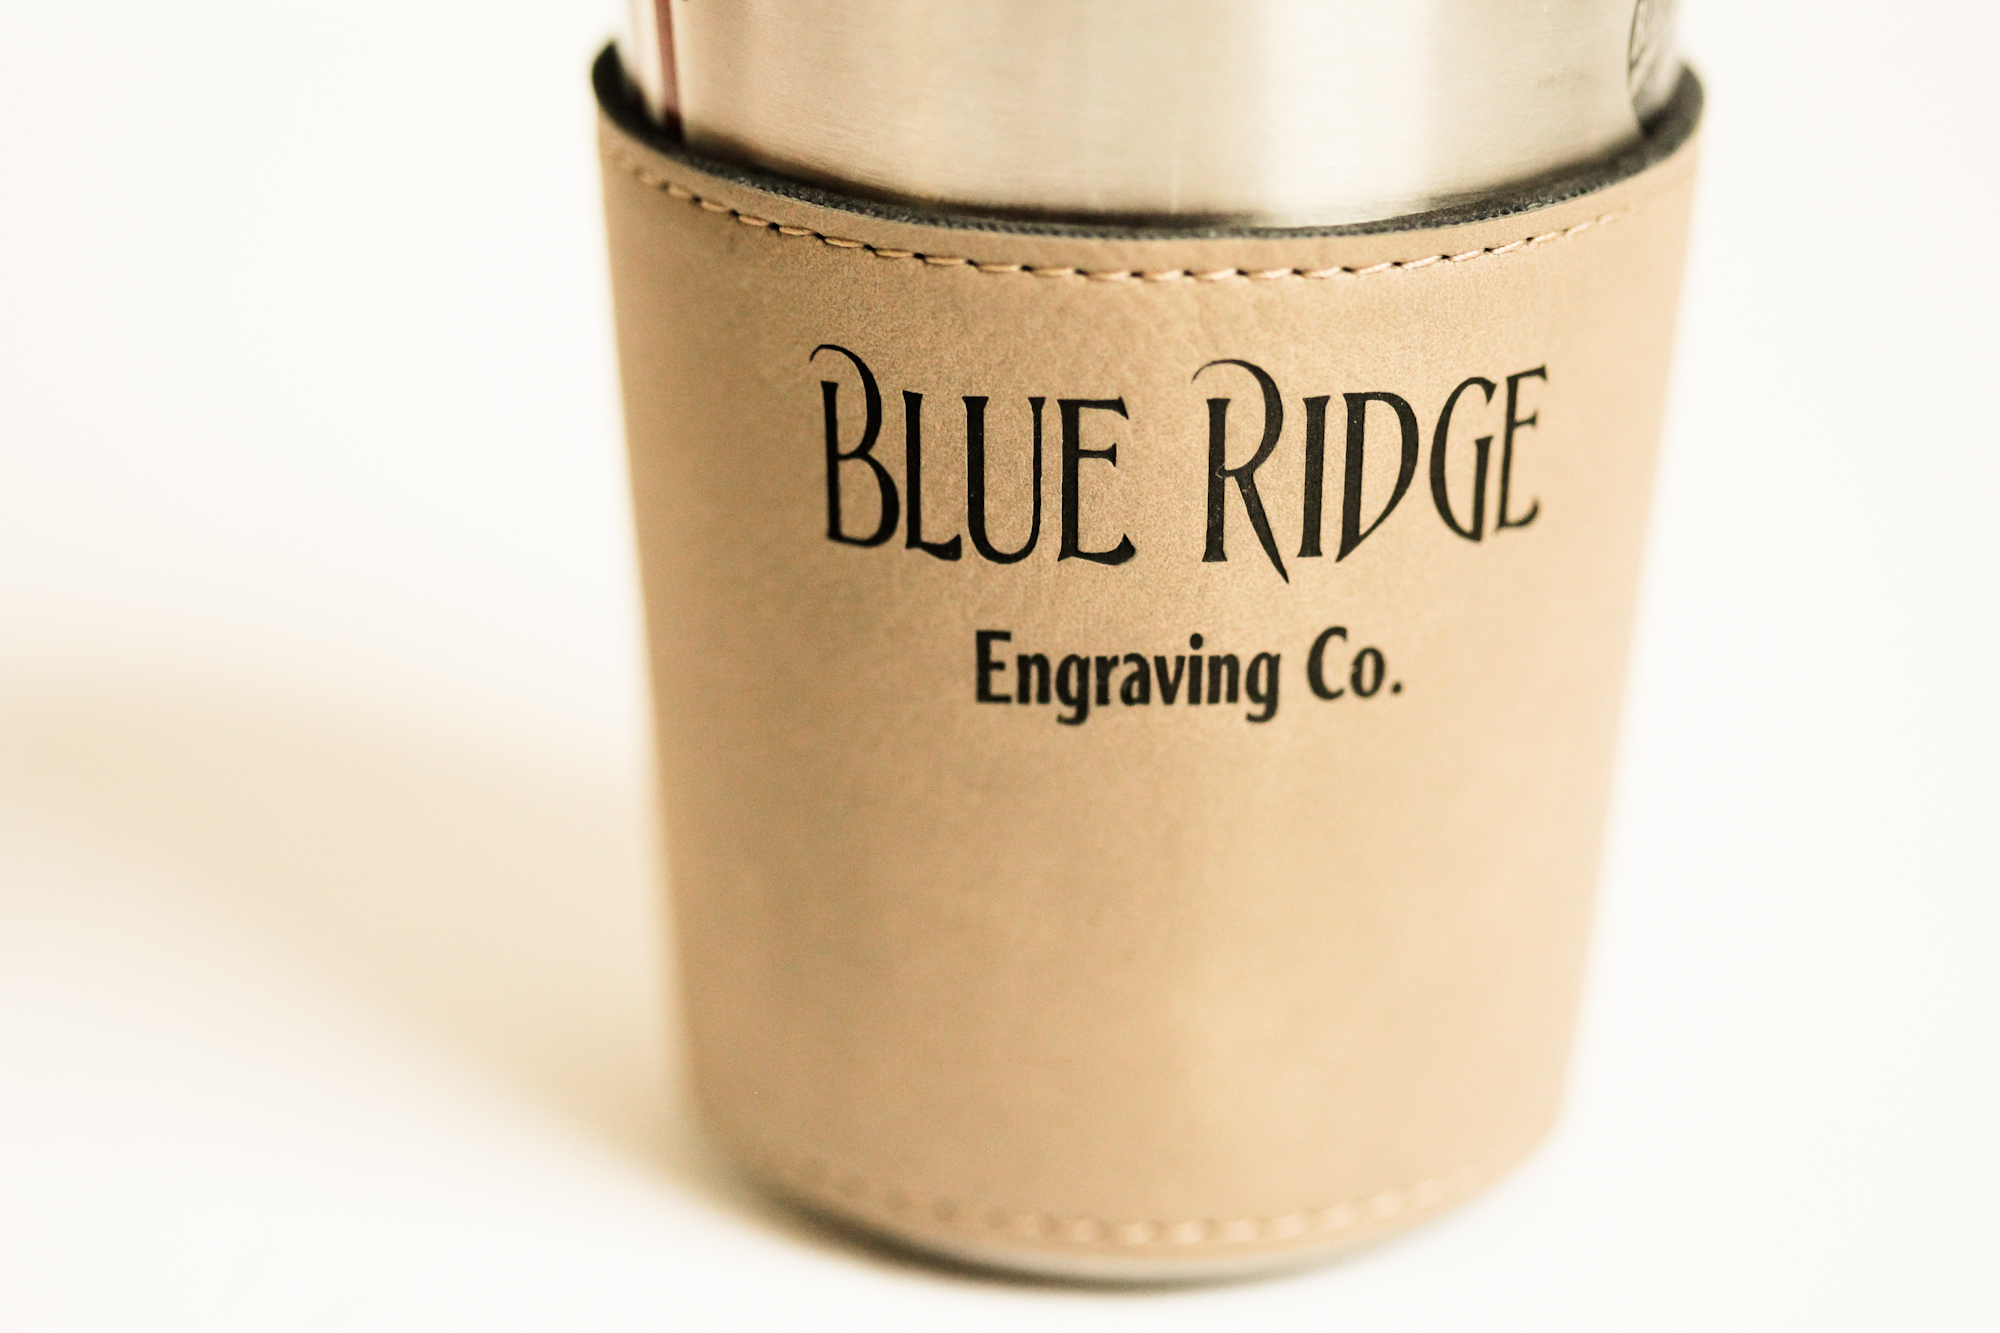 Blue_Ridge_Engraving_Co.__Products_(96_of_46)_-_Copy